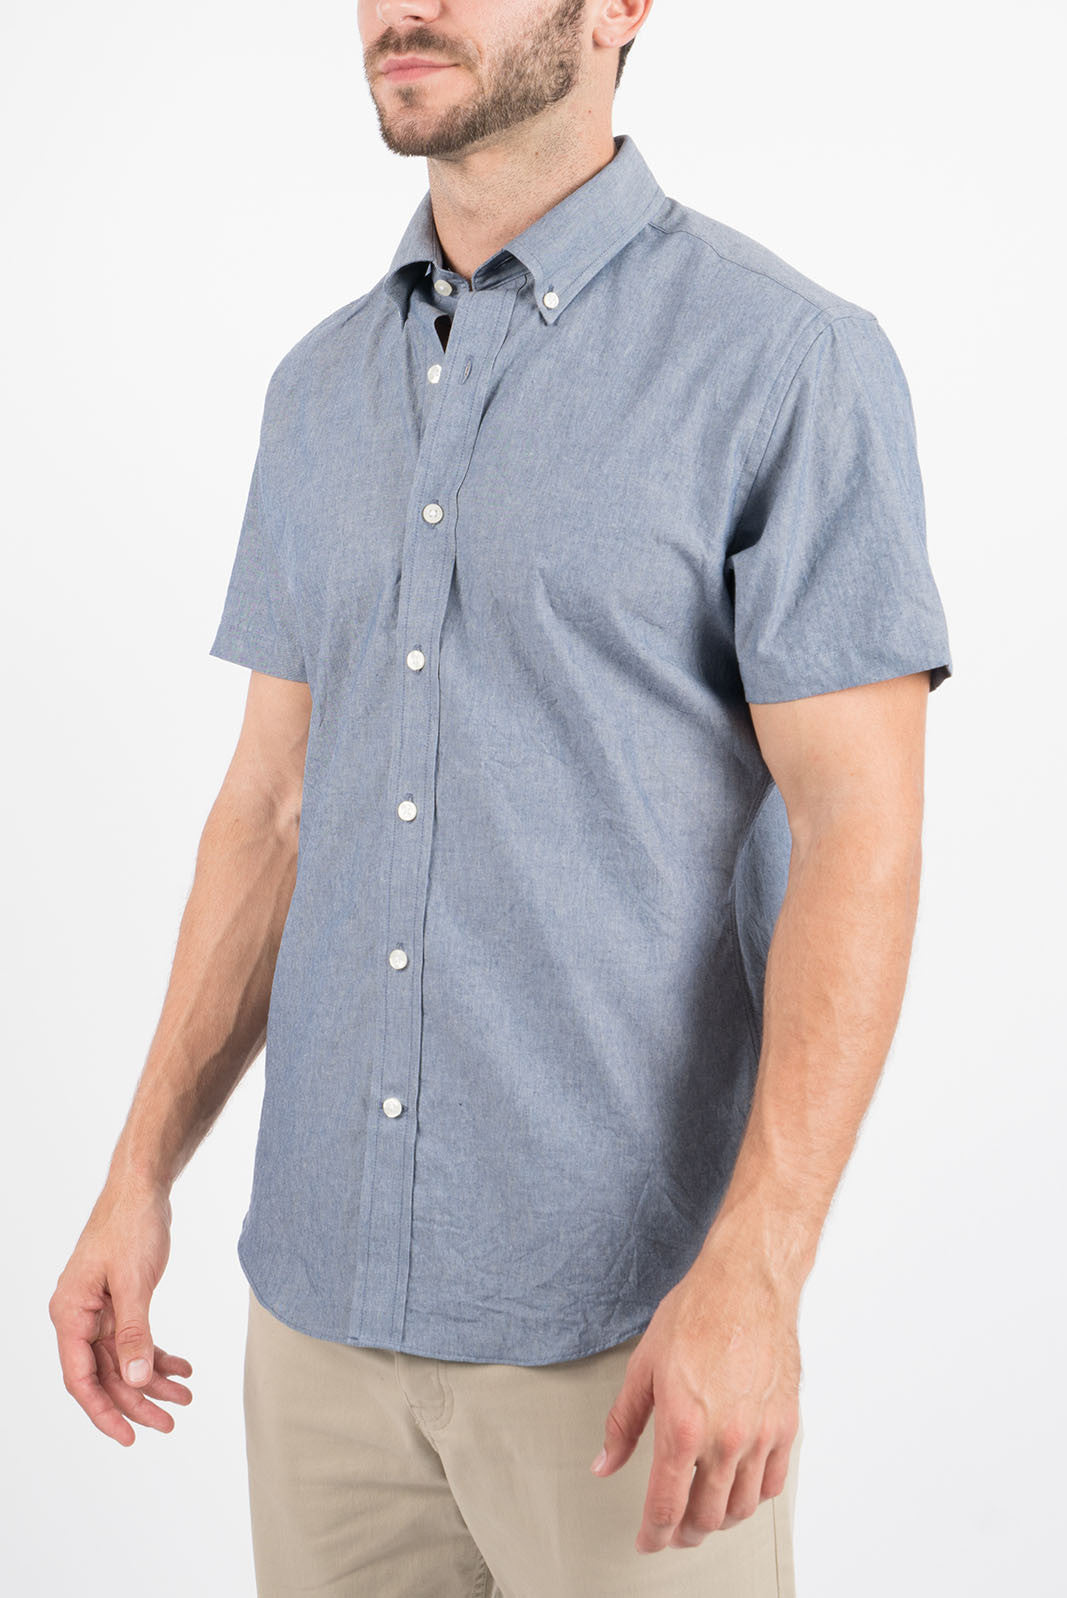 Blue Chambray: Semi-Spread Collar, Short Sleeve